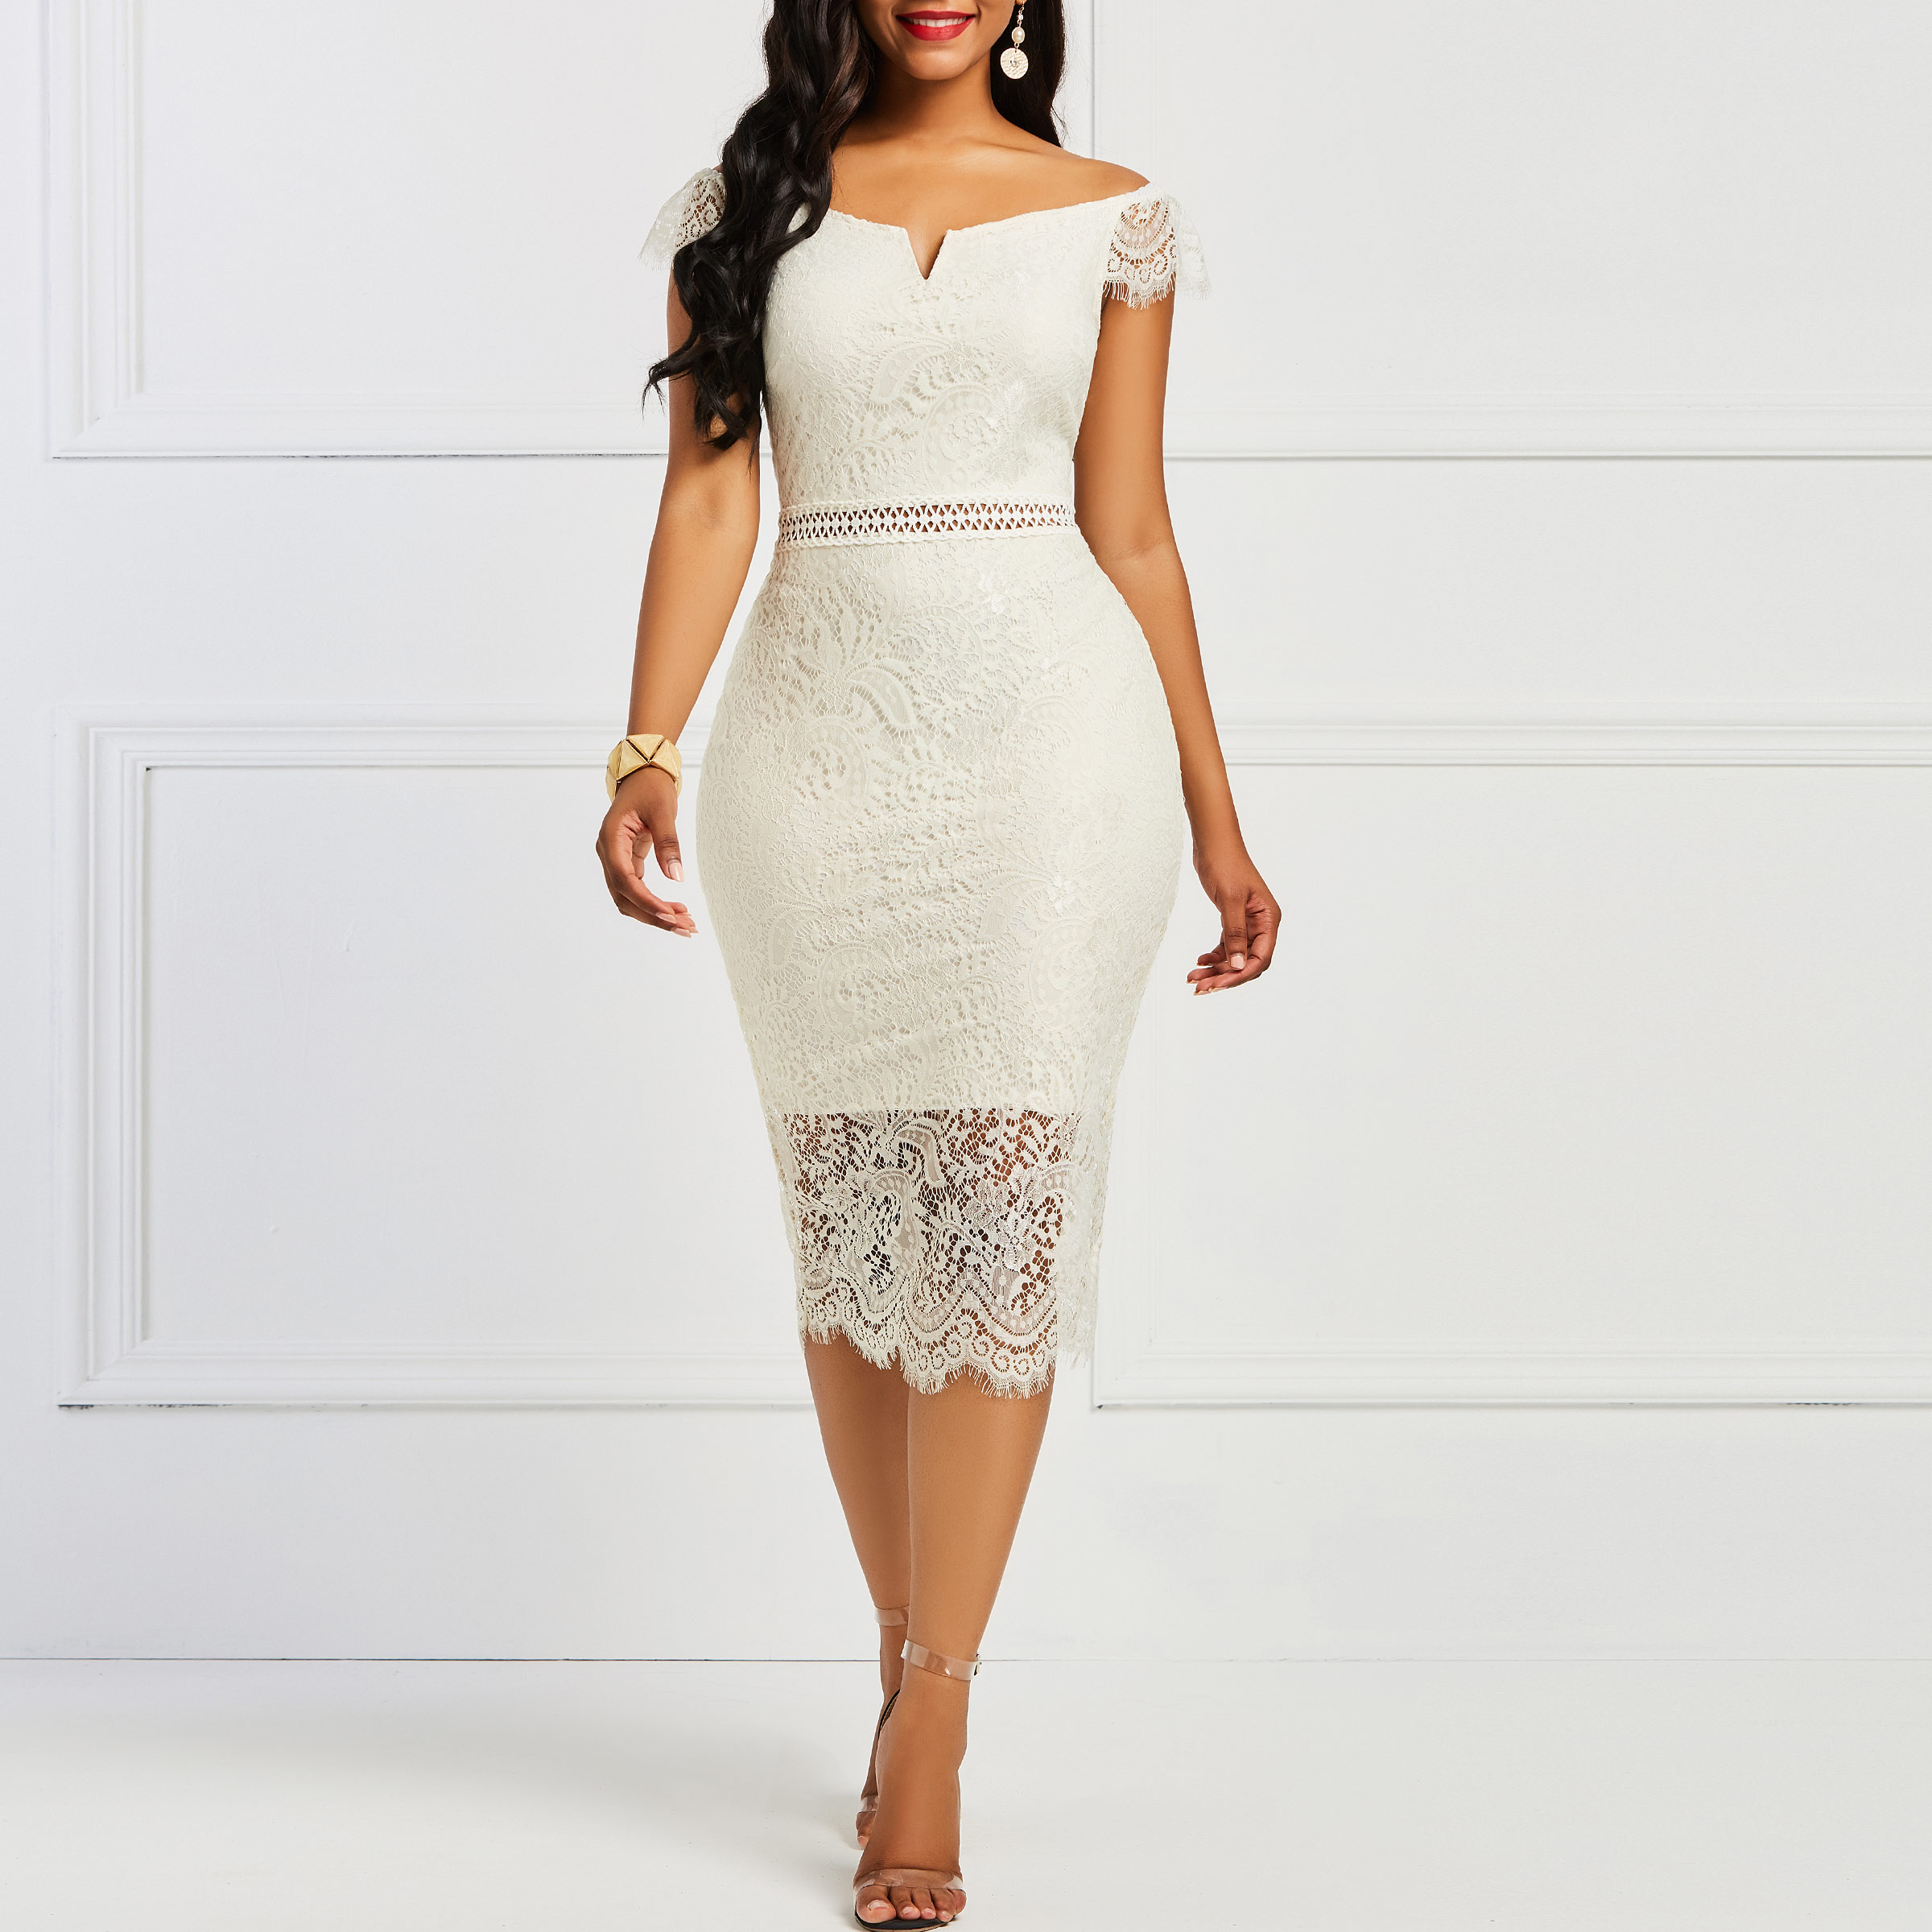 Sisjuly Bodycon Women <font><b>Dress</b></font> <font><b>Lace</b></font> Slash Neck <font><b>Hollow</b></font> <font><b>Backless</b></font> <font><b>Sexy</b></font> Elegant OL Party Chic Mid Calf Patchwork Sheath Retro <font><b>Dresses</b></font> image